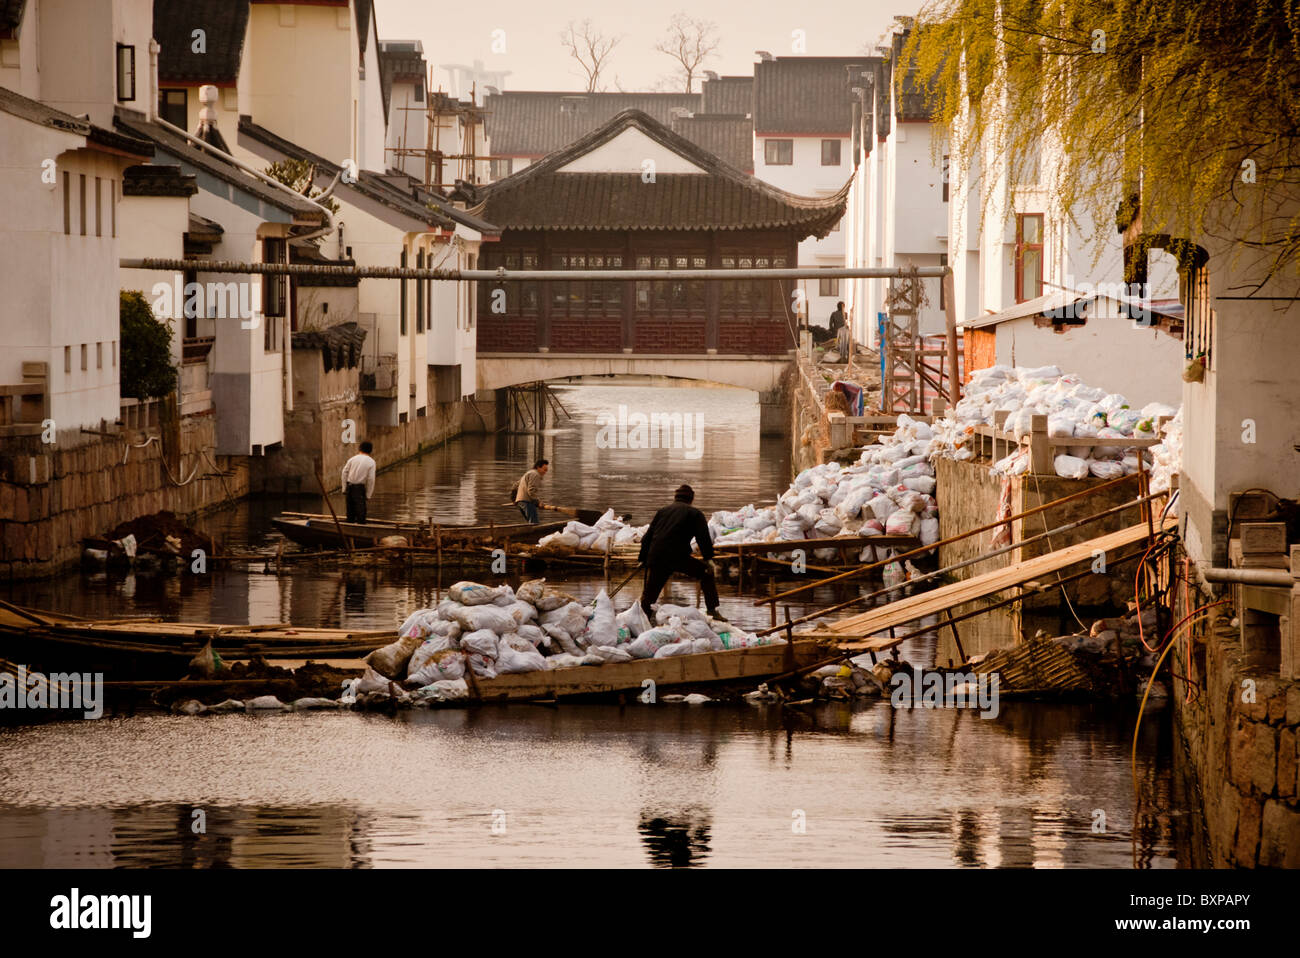 rubbish-collection-via-the-canal-system-